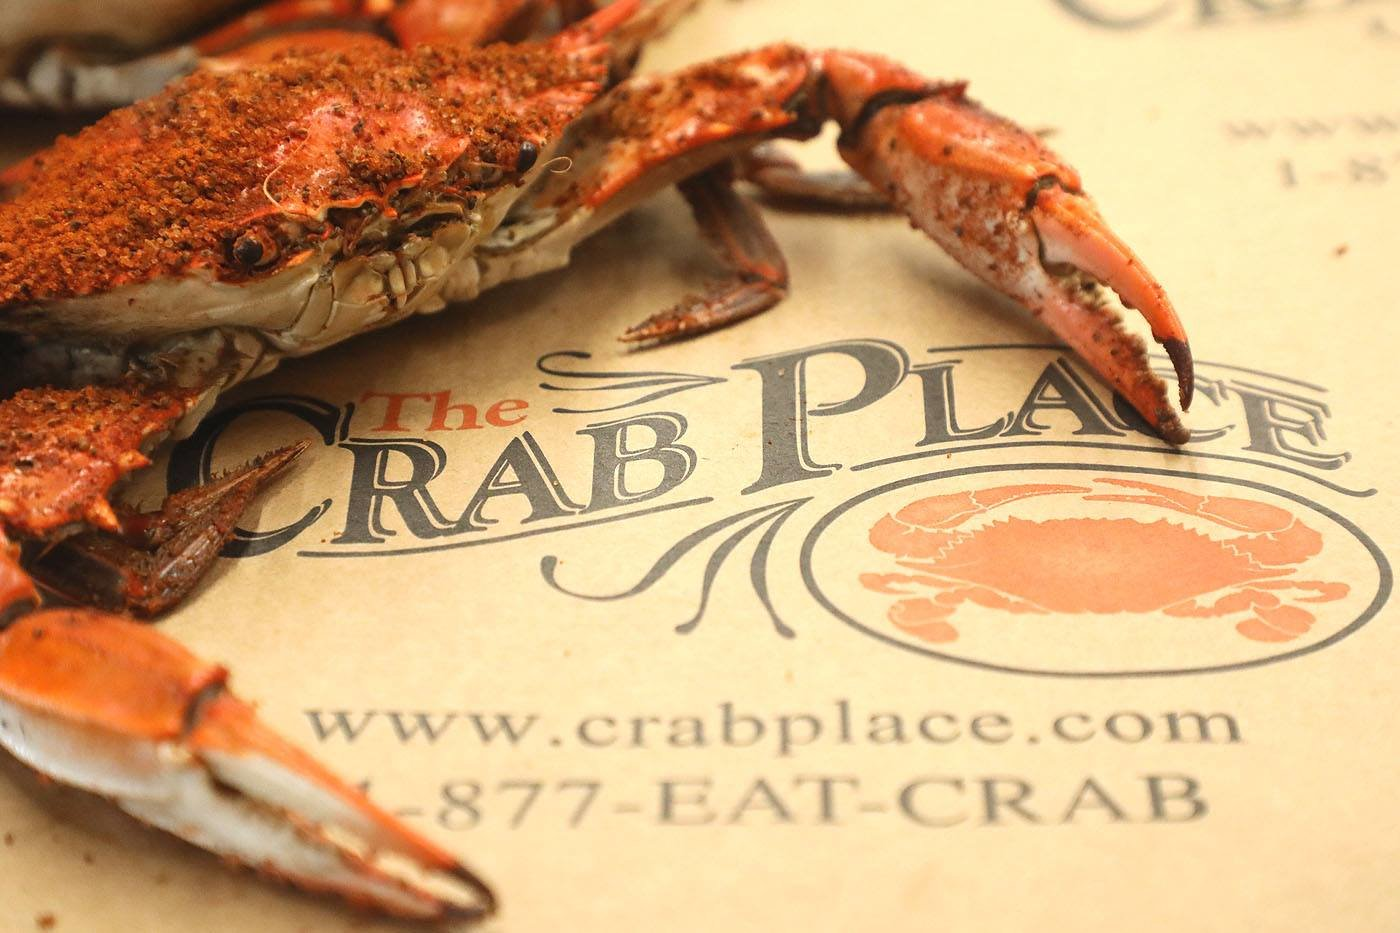 Crab Place Crab & Cruise Menu